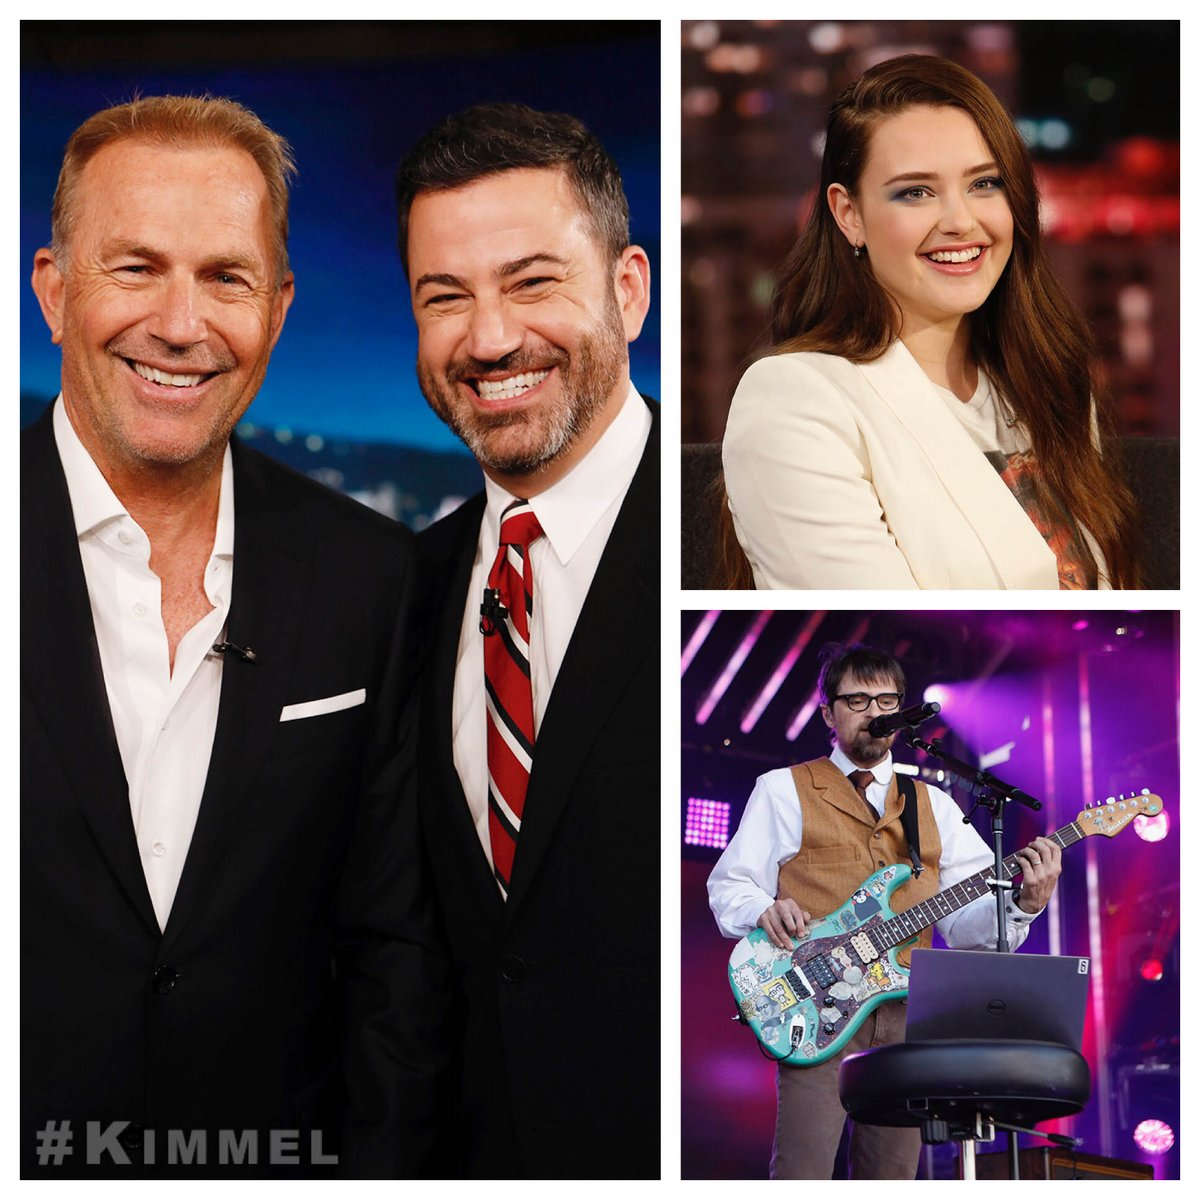 Jimmy Kimmel Live On Twitter Tonight On Kimmel Kevin Costner Modernwest Yellowstone Katherine Langford 13reasonswhy Music From Weezer On The Mbusa Outdoor Stage Weezercoverafrica Https T Co Bxt2gmzxx1 When kimmel teased the star by showing a clip that replayed her racy dance number on repeat she shouted 'it was so not that long' as kimmel declared it 'the three most magical seconds' of his life. jimmy kimmel live on twitter tonight